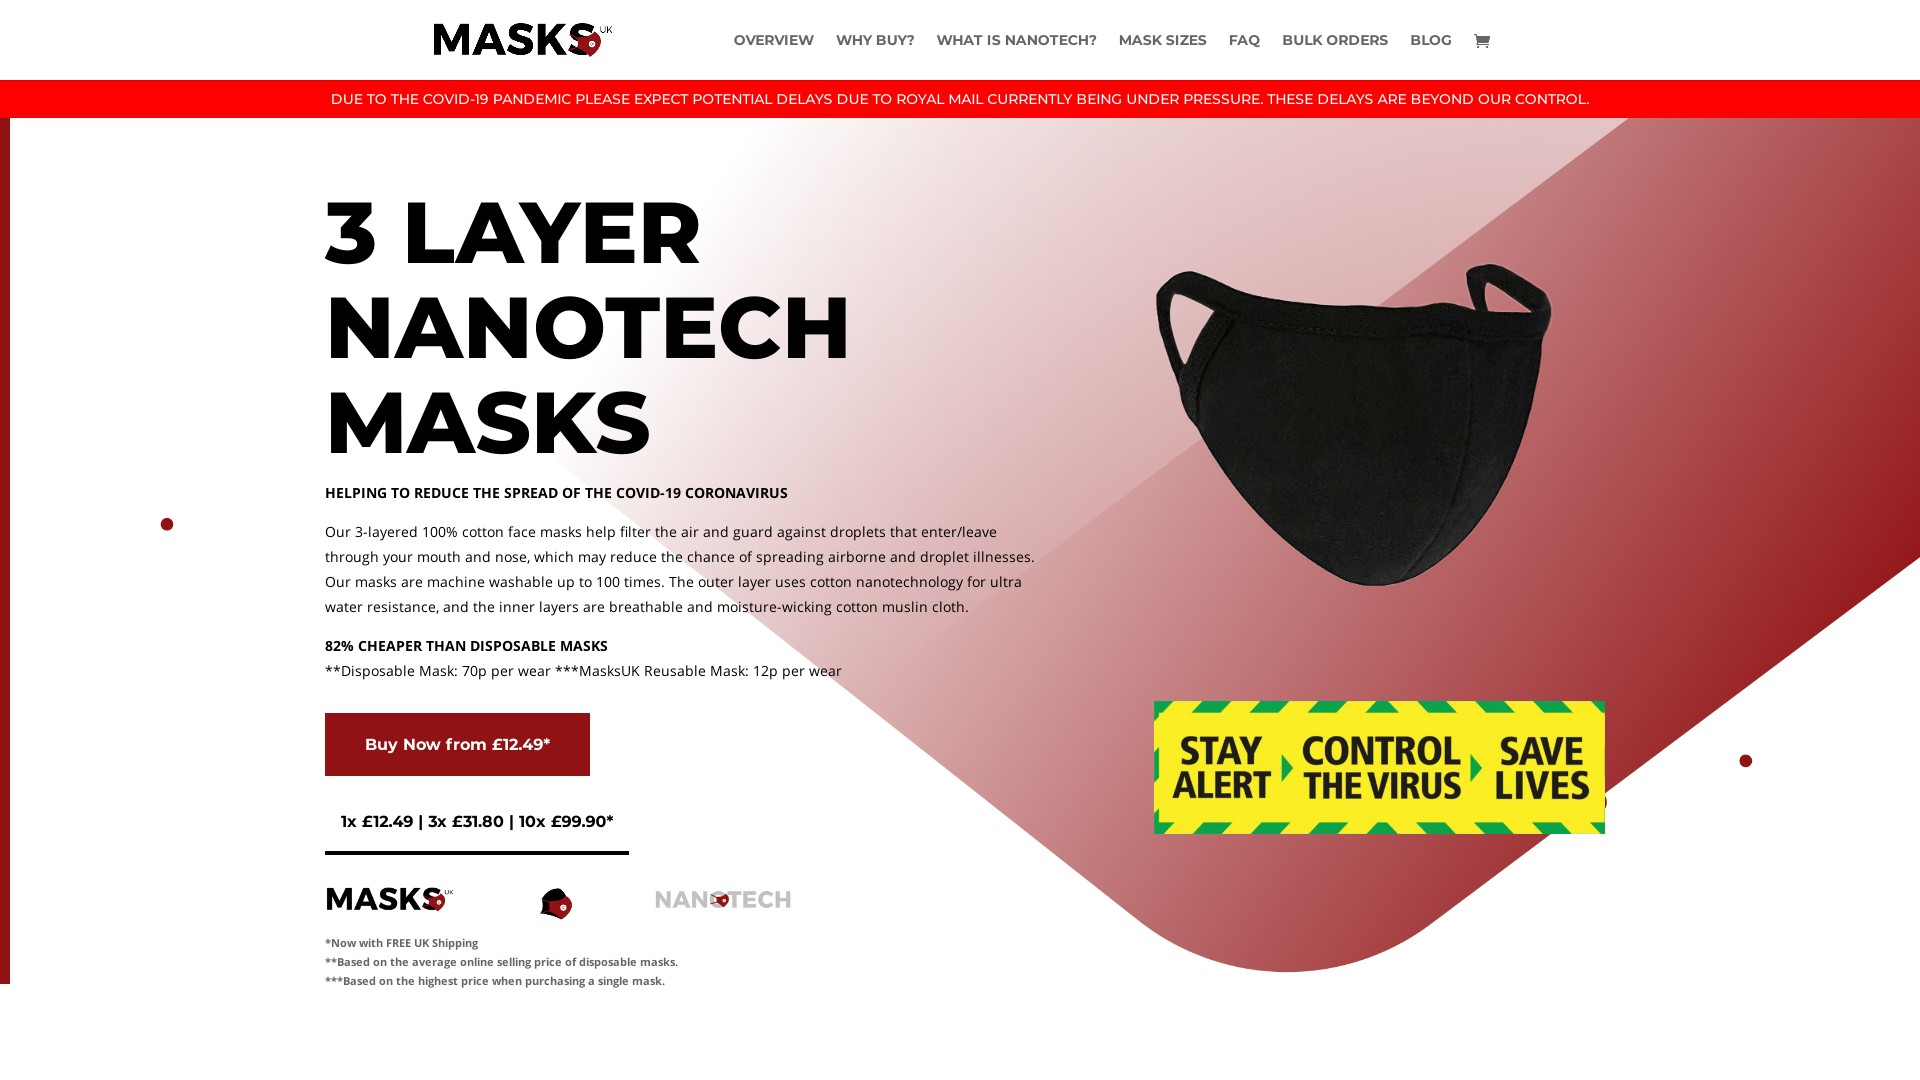 Is Masksuk.com a Scam? See the Reviews